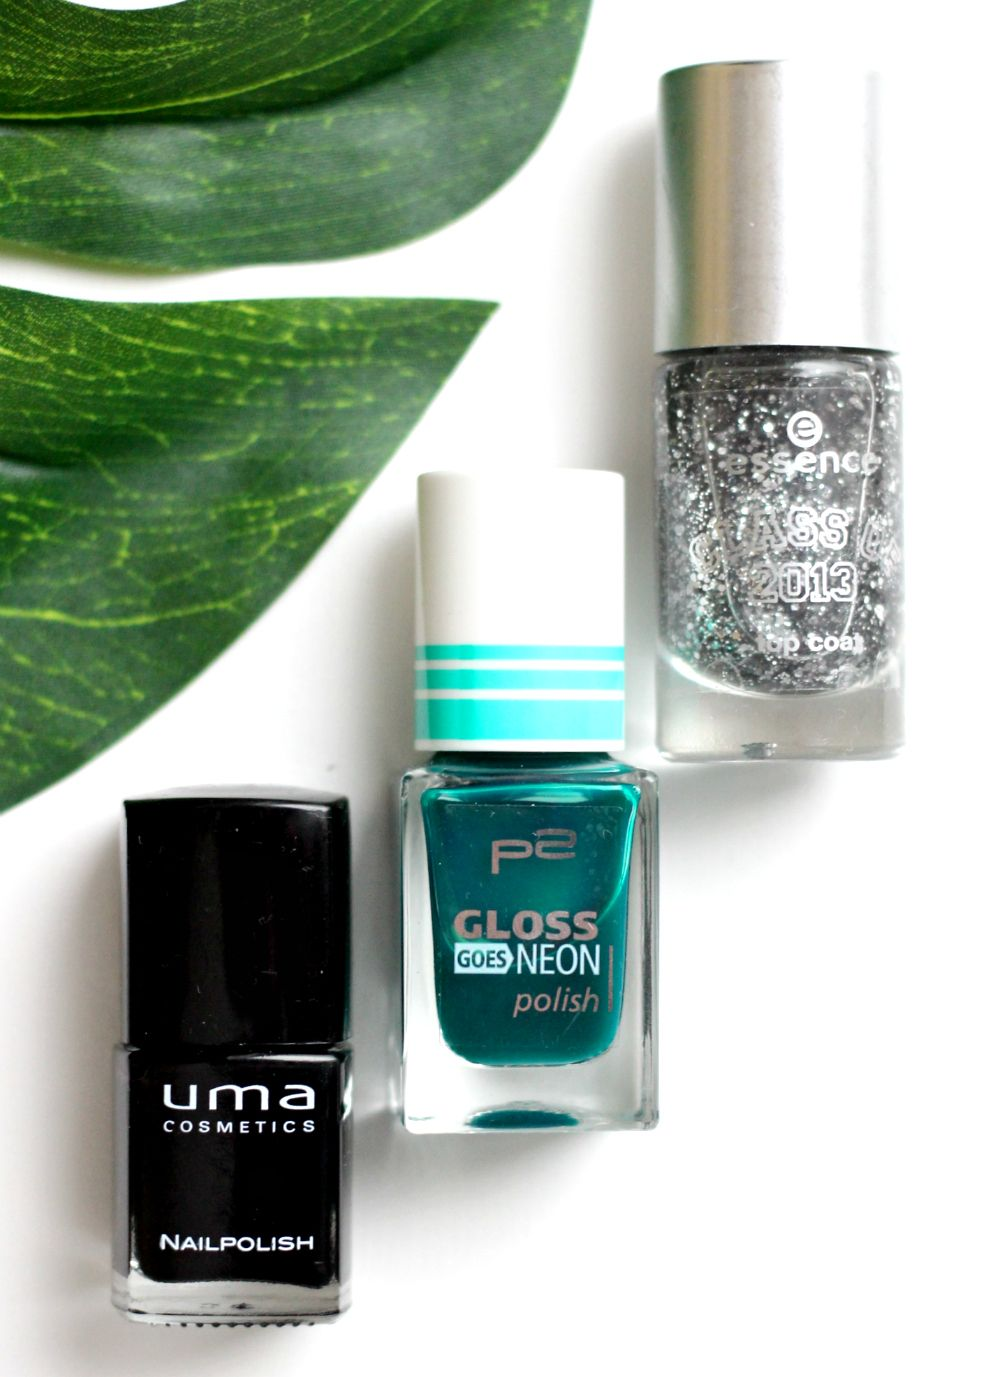 P2 gloss goes neon nailart